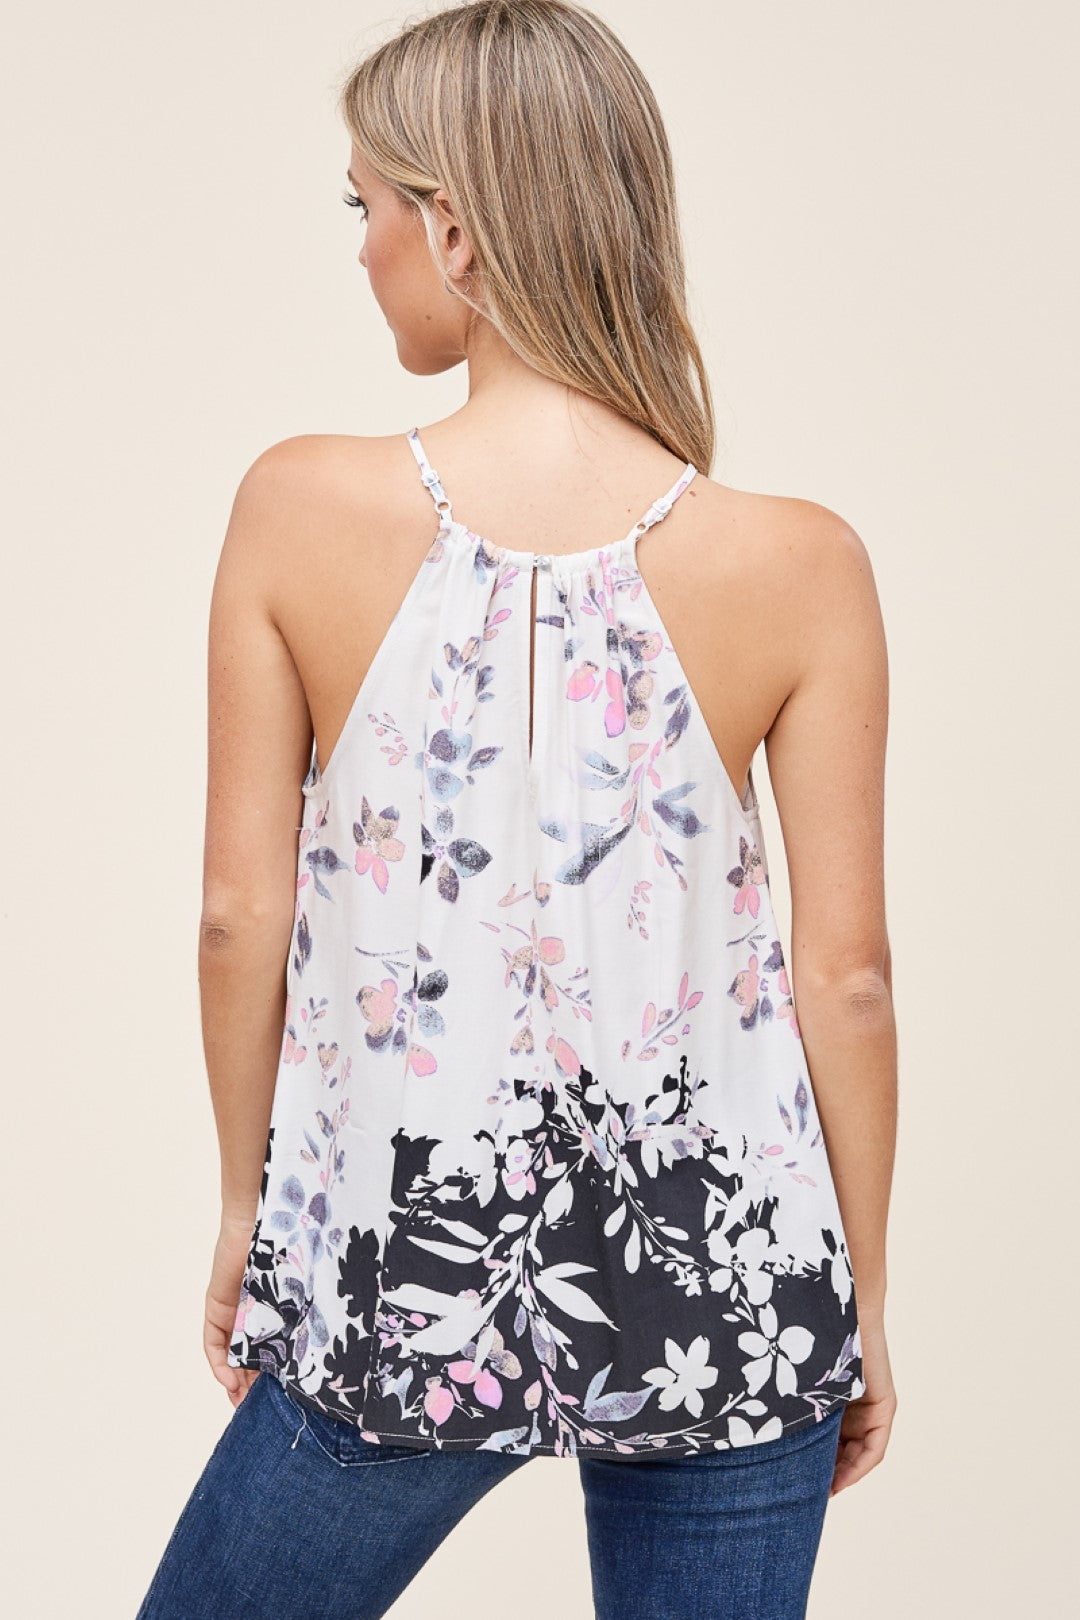 Life In Bloom Tank